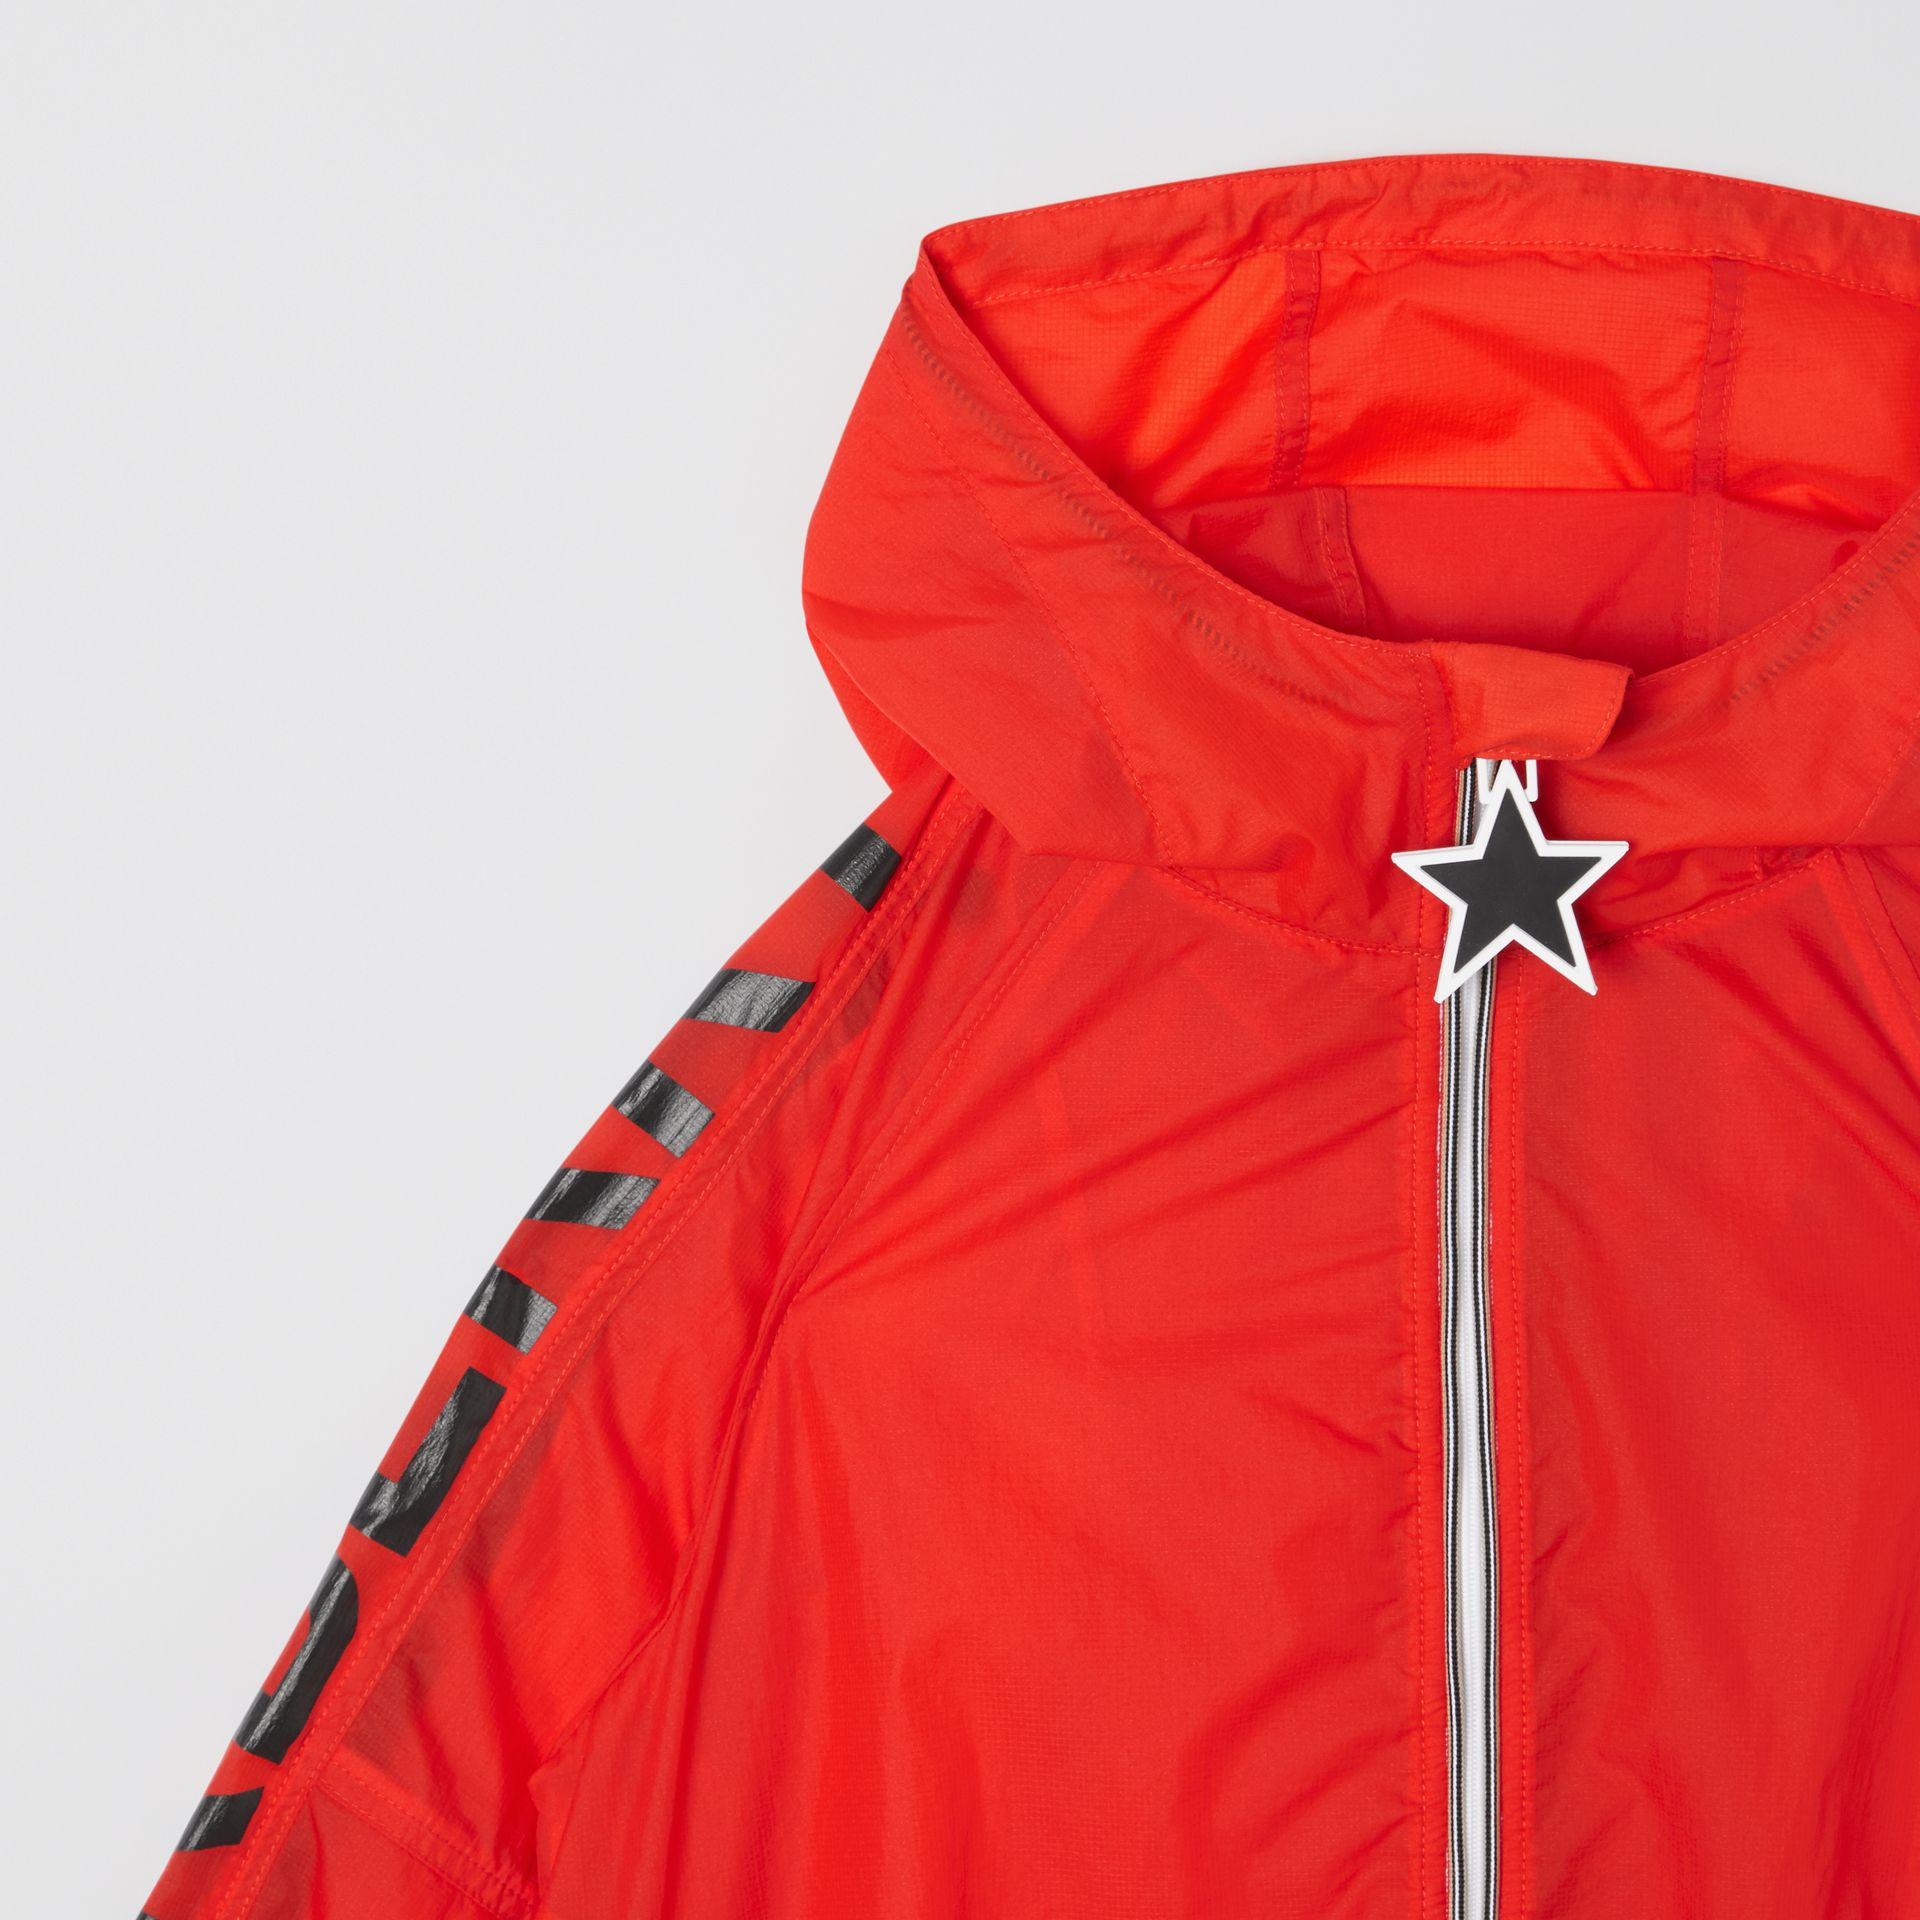 Star Detail Logo Print Lightweight Hooded Jacket in Vermilion Red | Burberry - gallery image 5